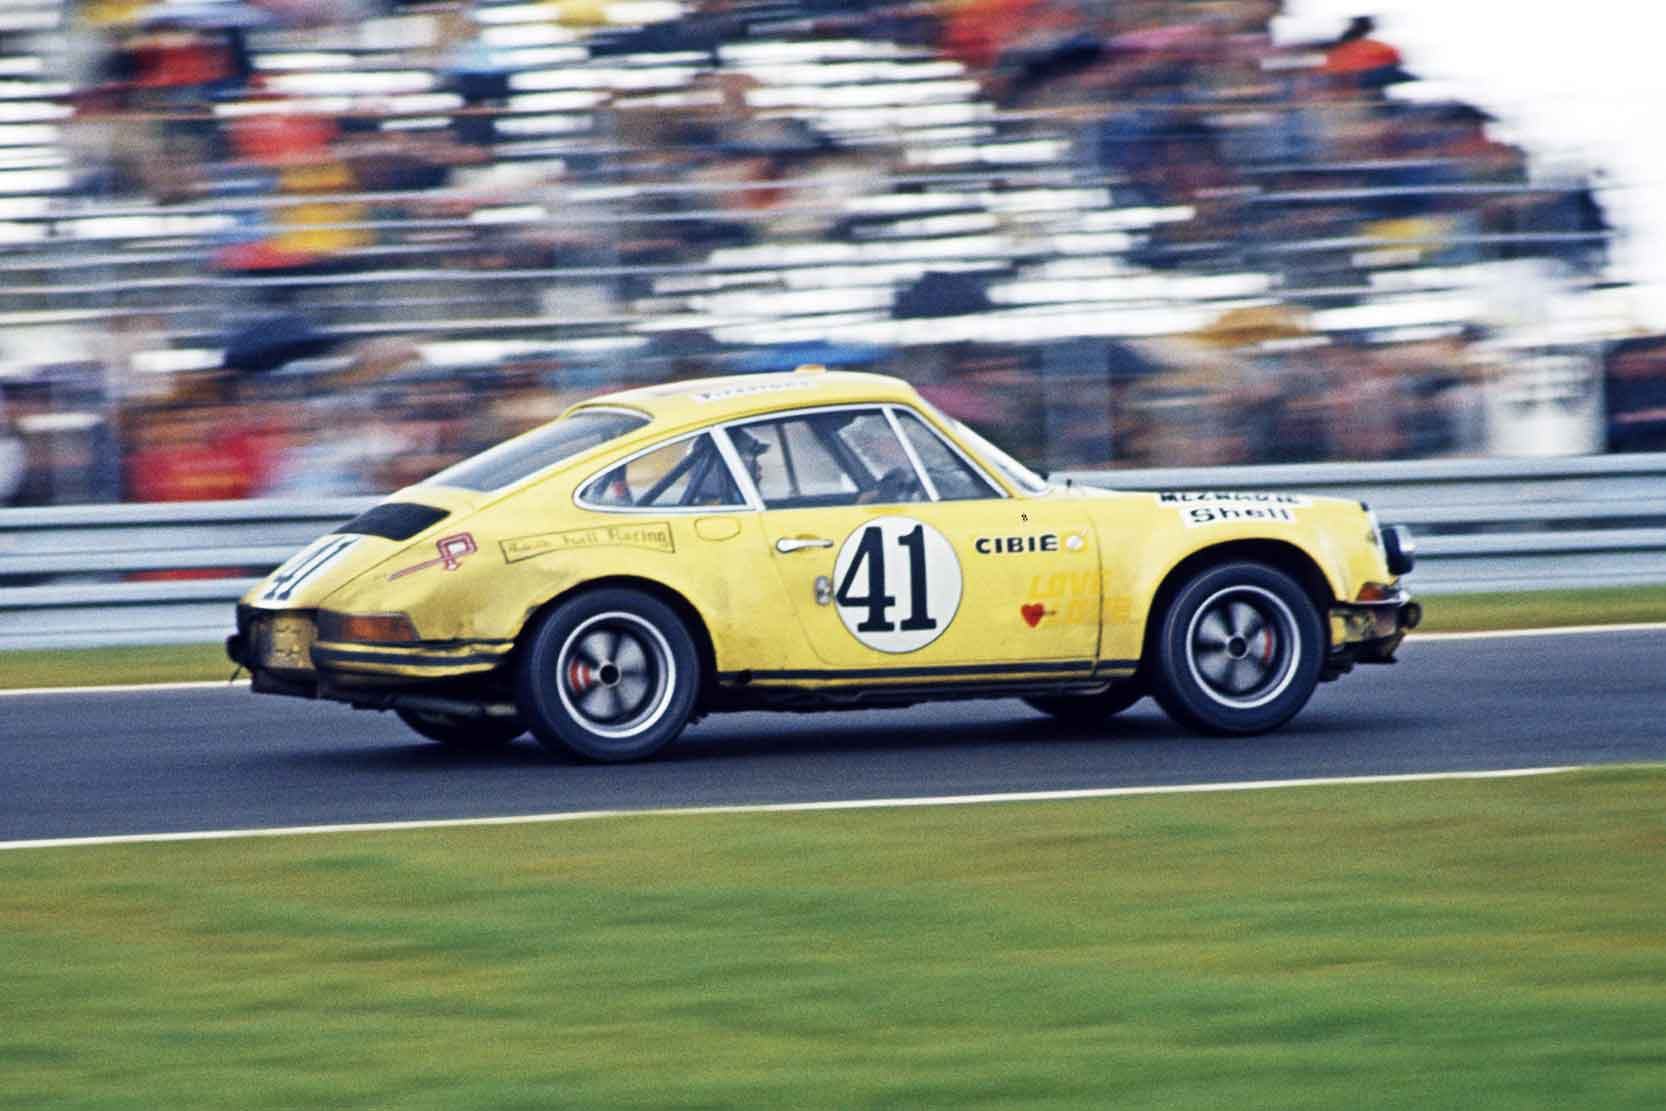 Exterieur_Porsche-911-2-5-ST-Take-Two_9